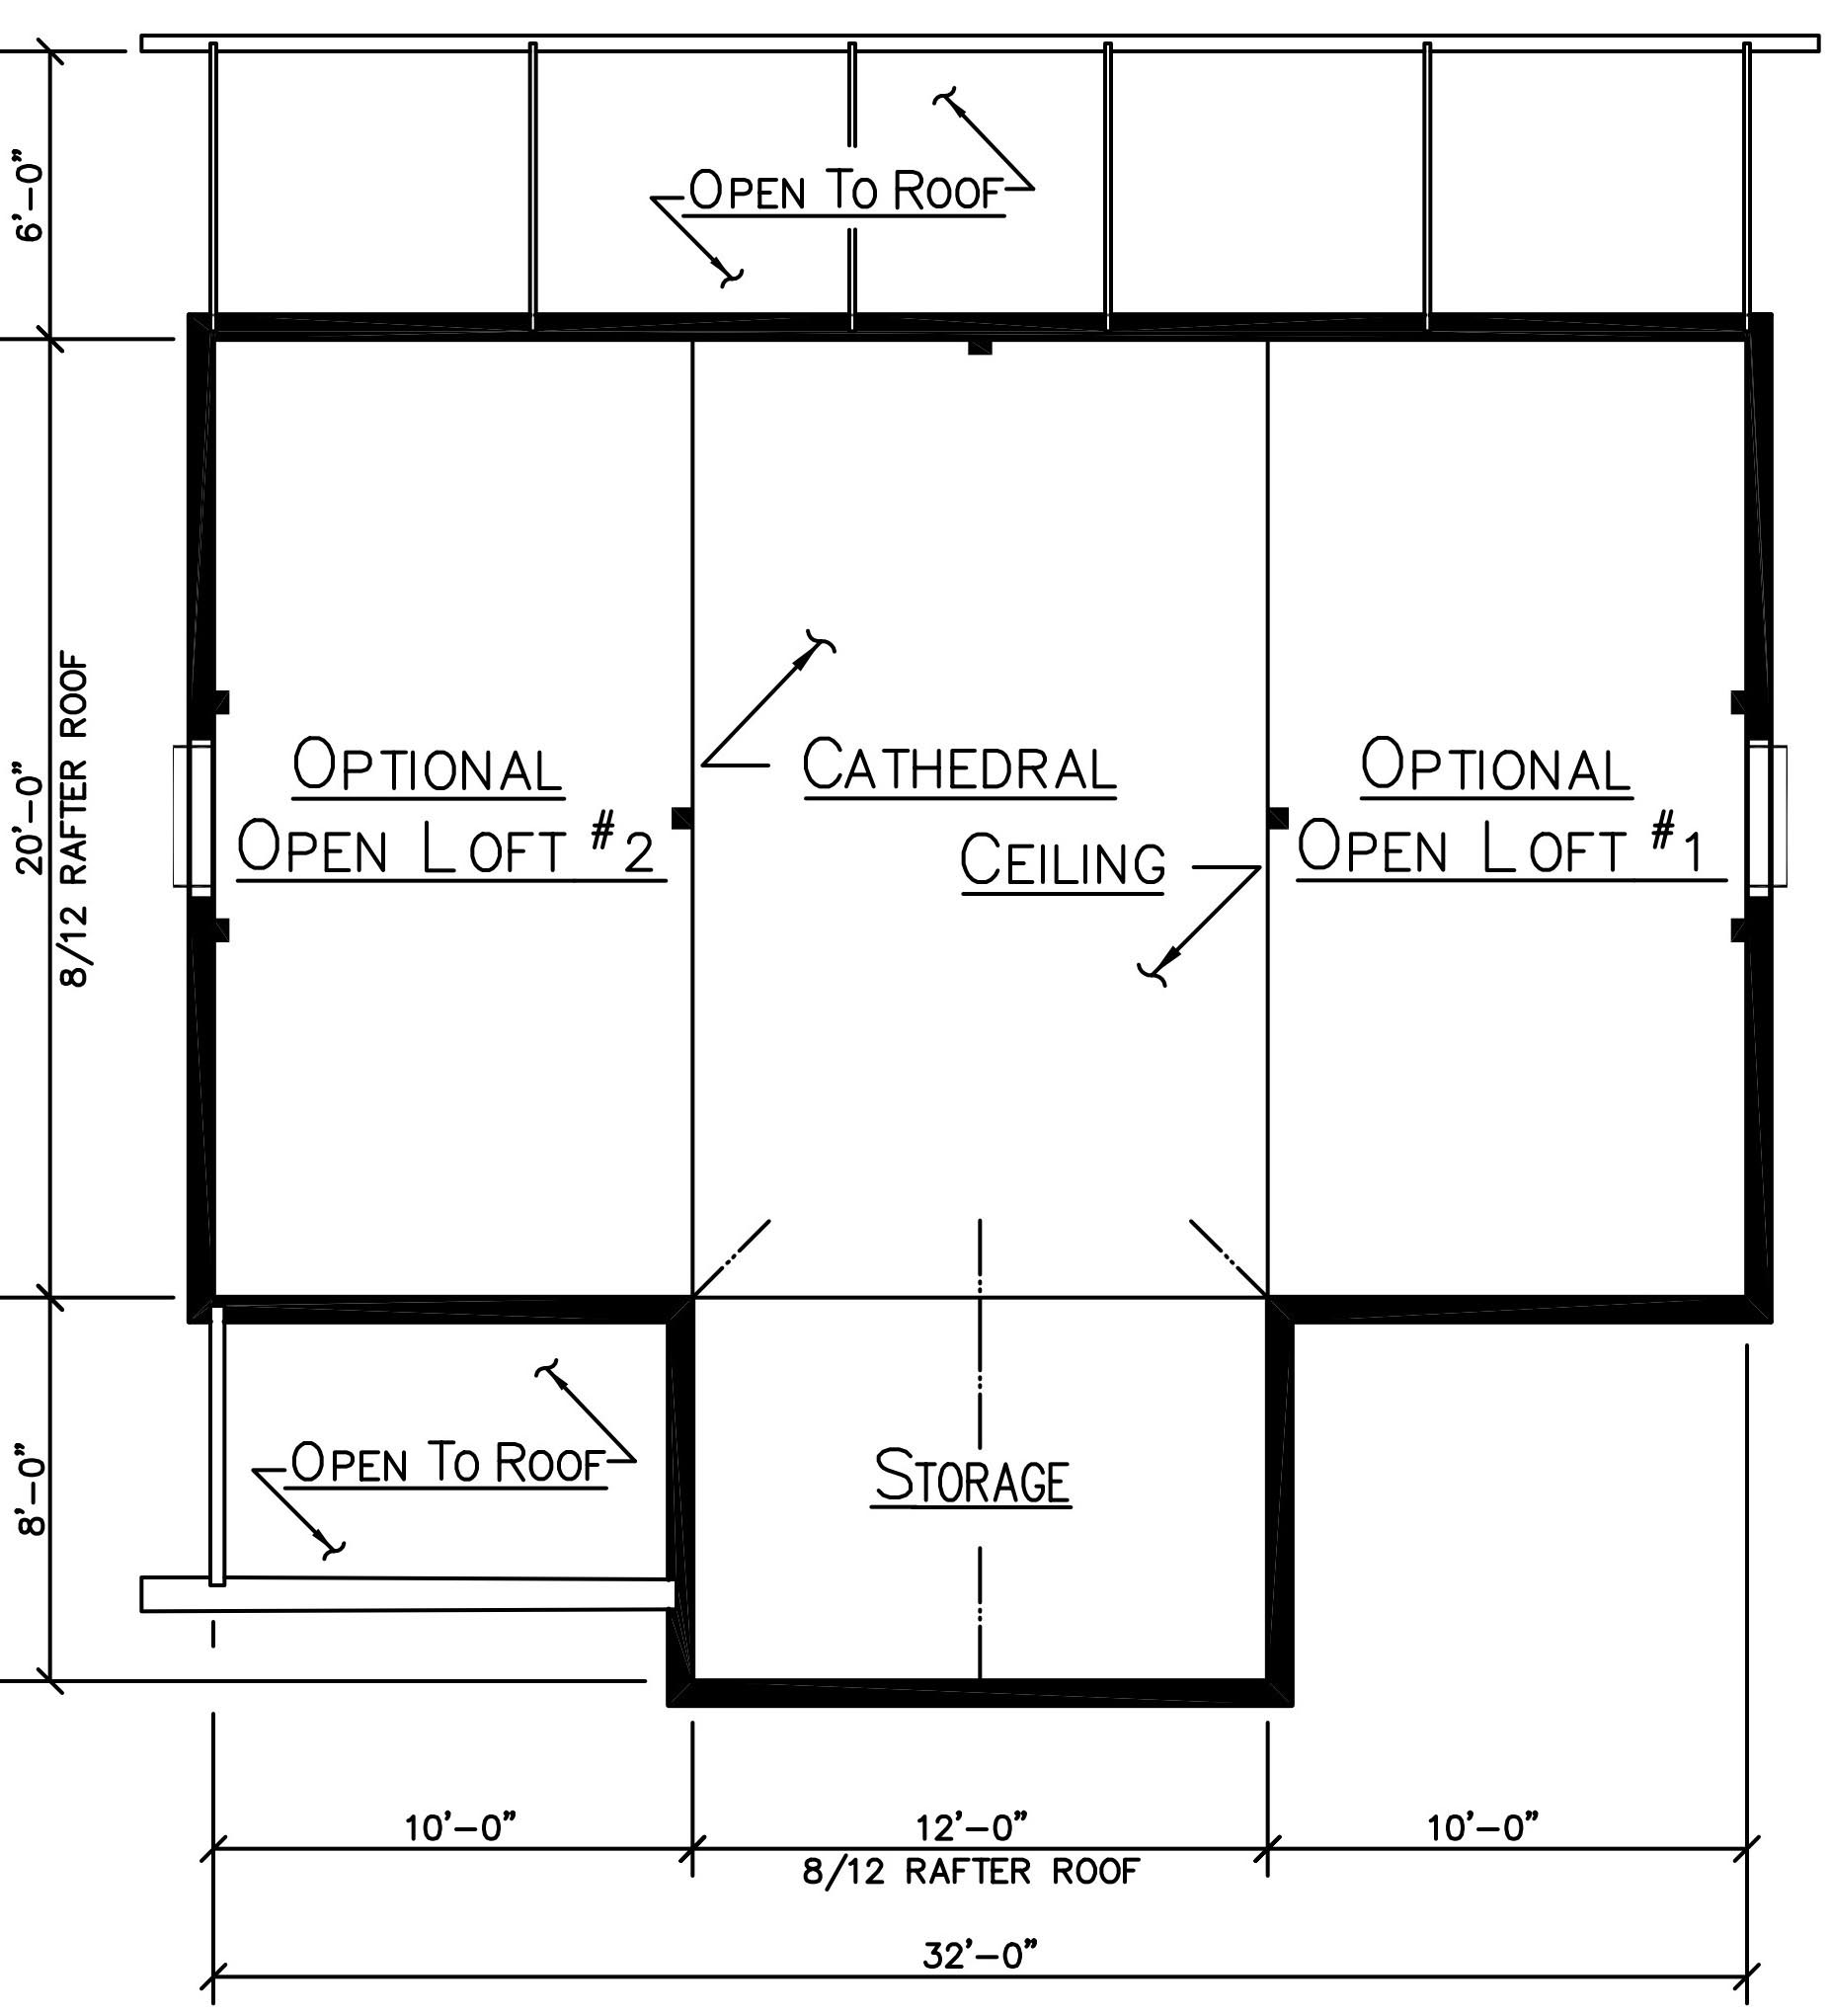 Camp sebago log cabin ward cedar log homes floor plans for Camp plans